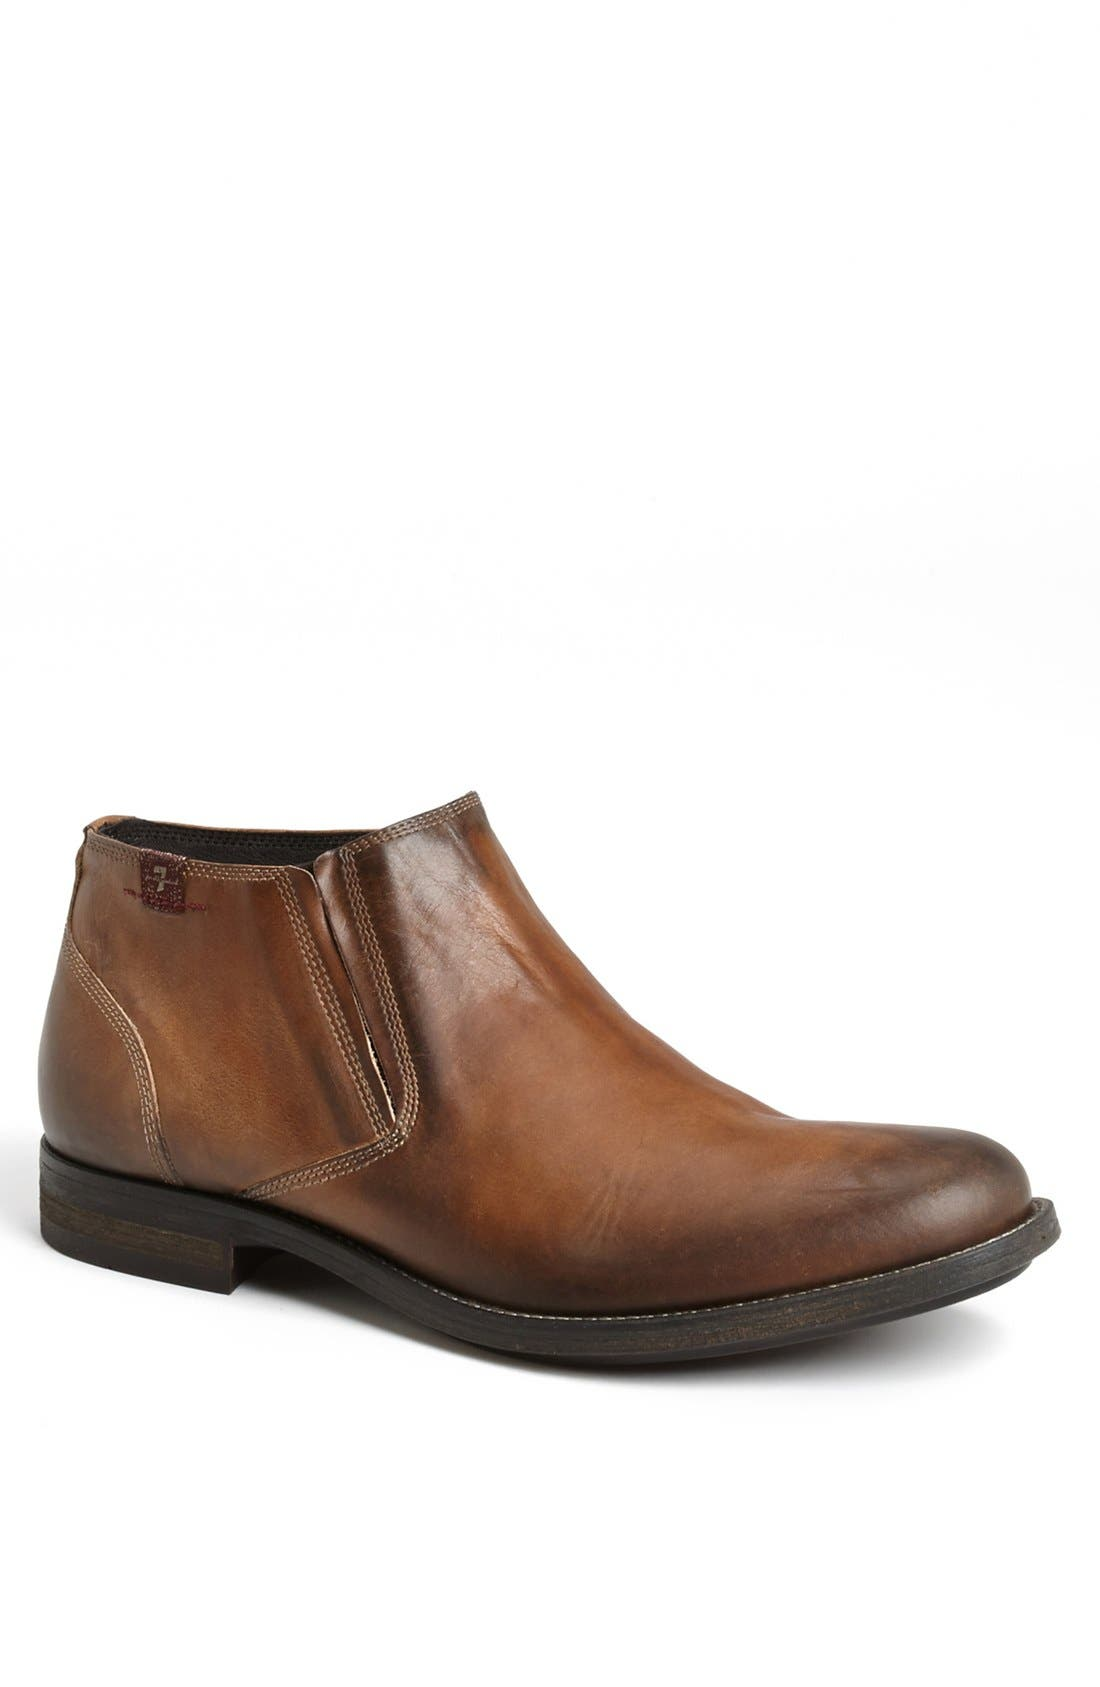 Alternate Image 1 Selected - 7 For All Mankind® 'Tag' Chelsea Boot (Men)